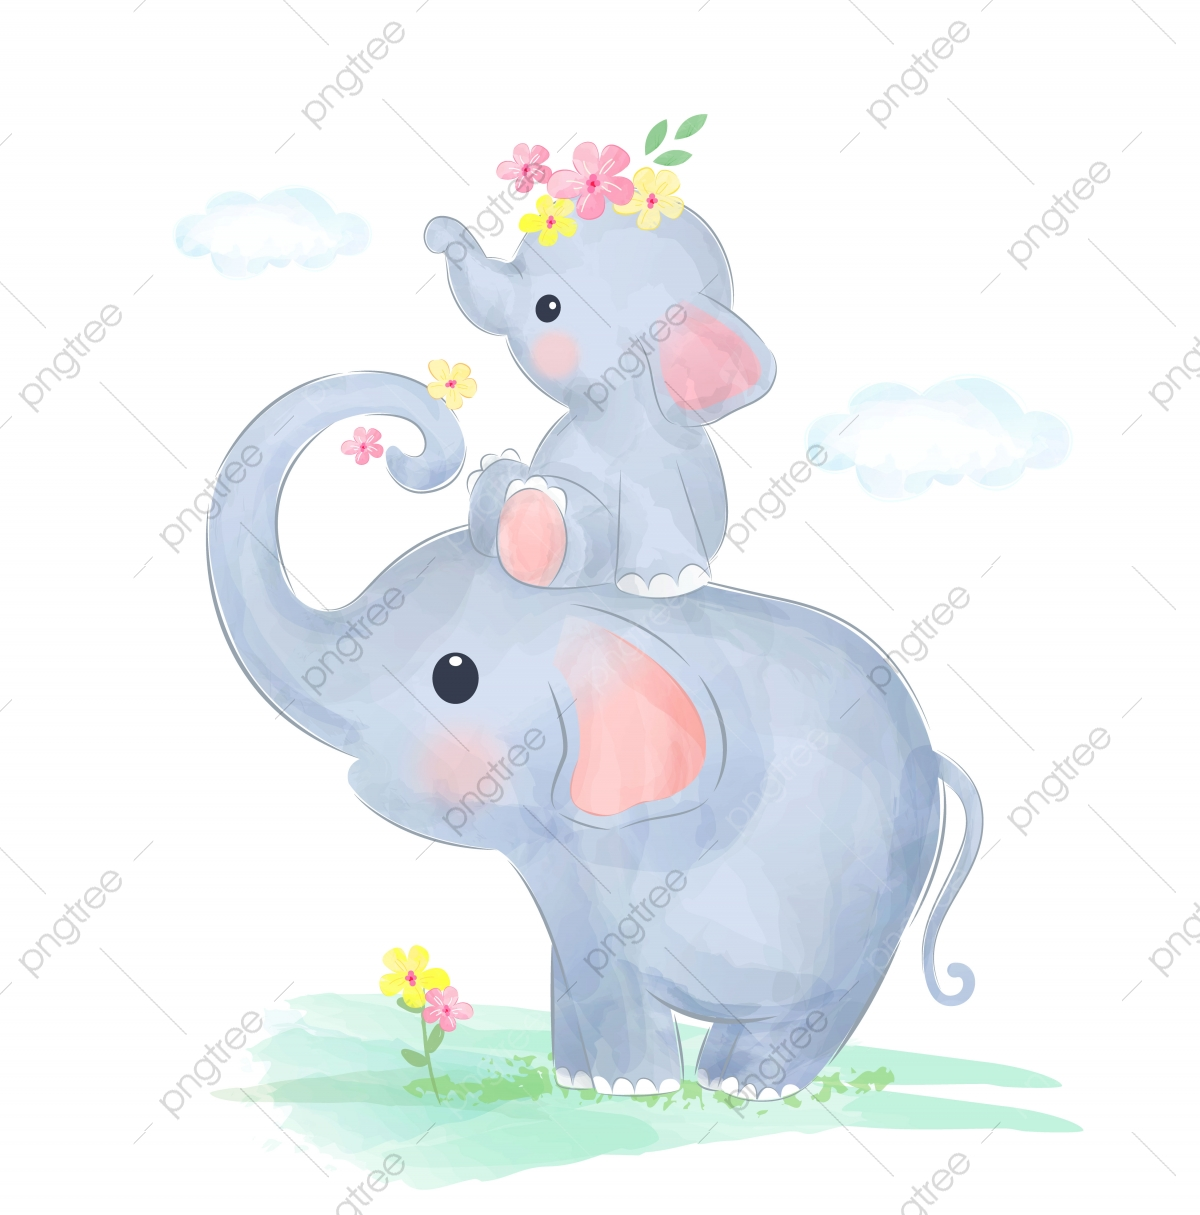 Elephant Clipart Png Image Transparent Baby Elephant Png / Download 6,791 baby elephant free vectors.